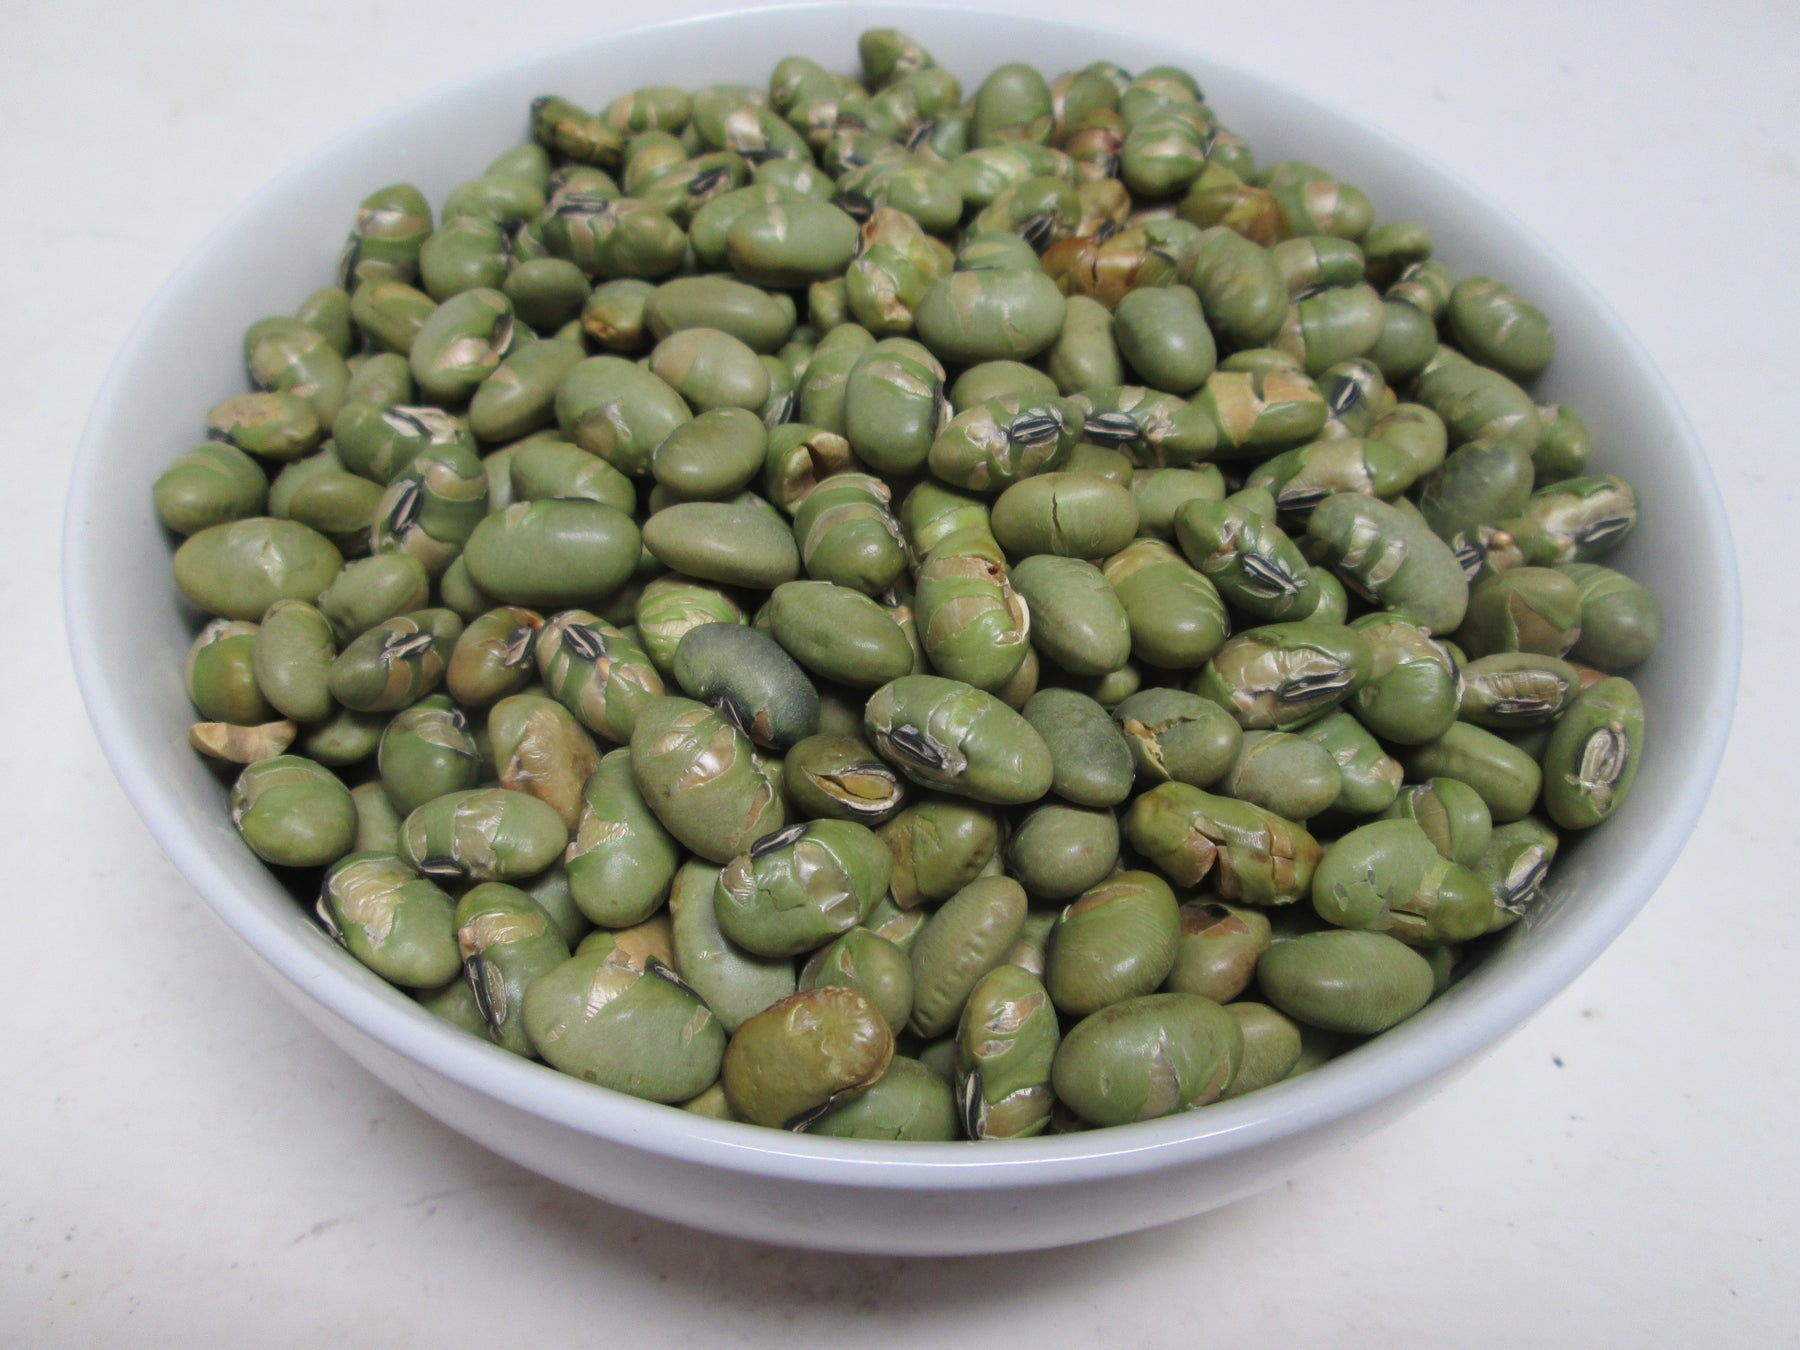 Roasted and Lightly Salted Edamame (Green Soybeans)  11 lbs